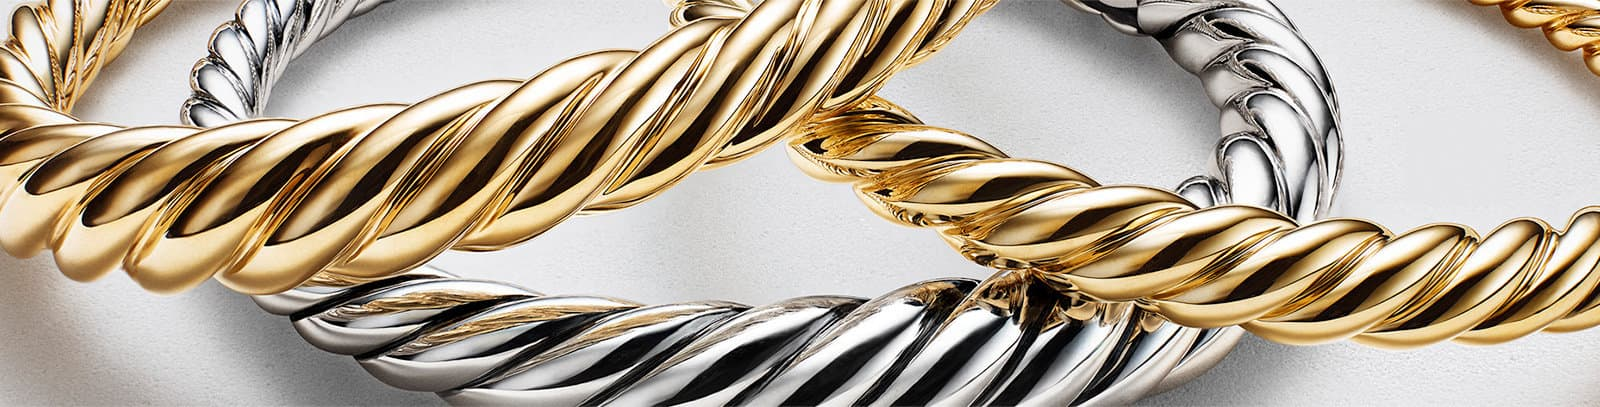 gold and silver cable bracelets